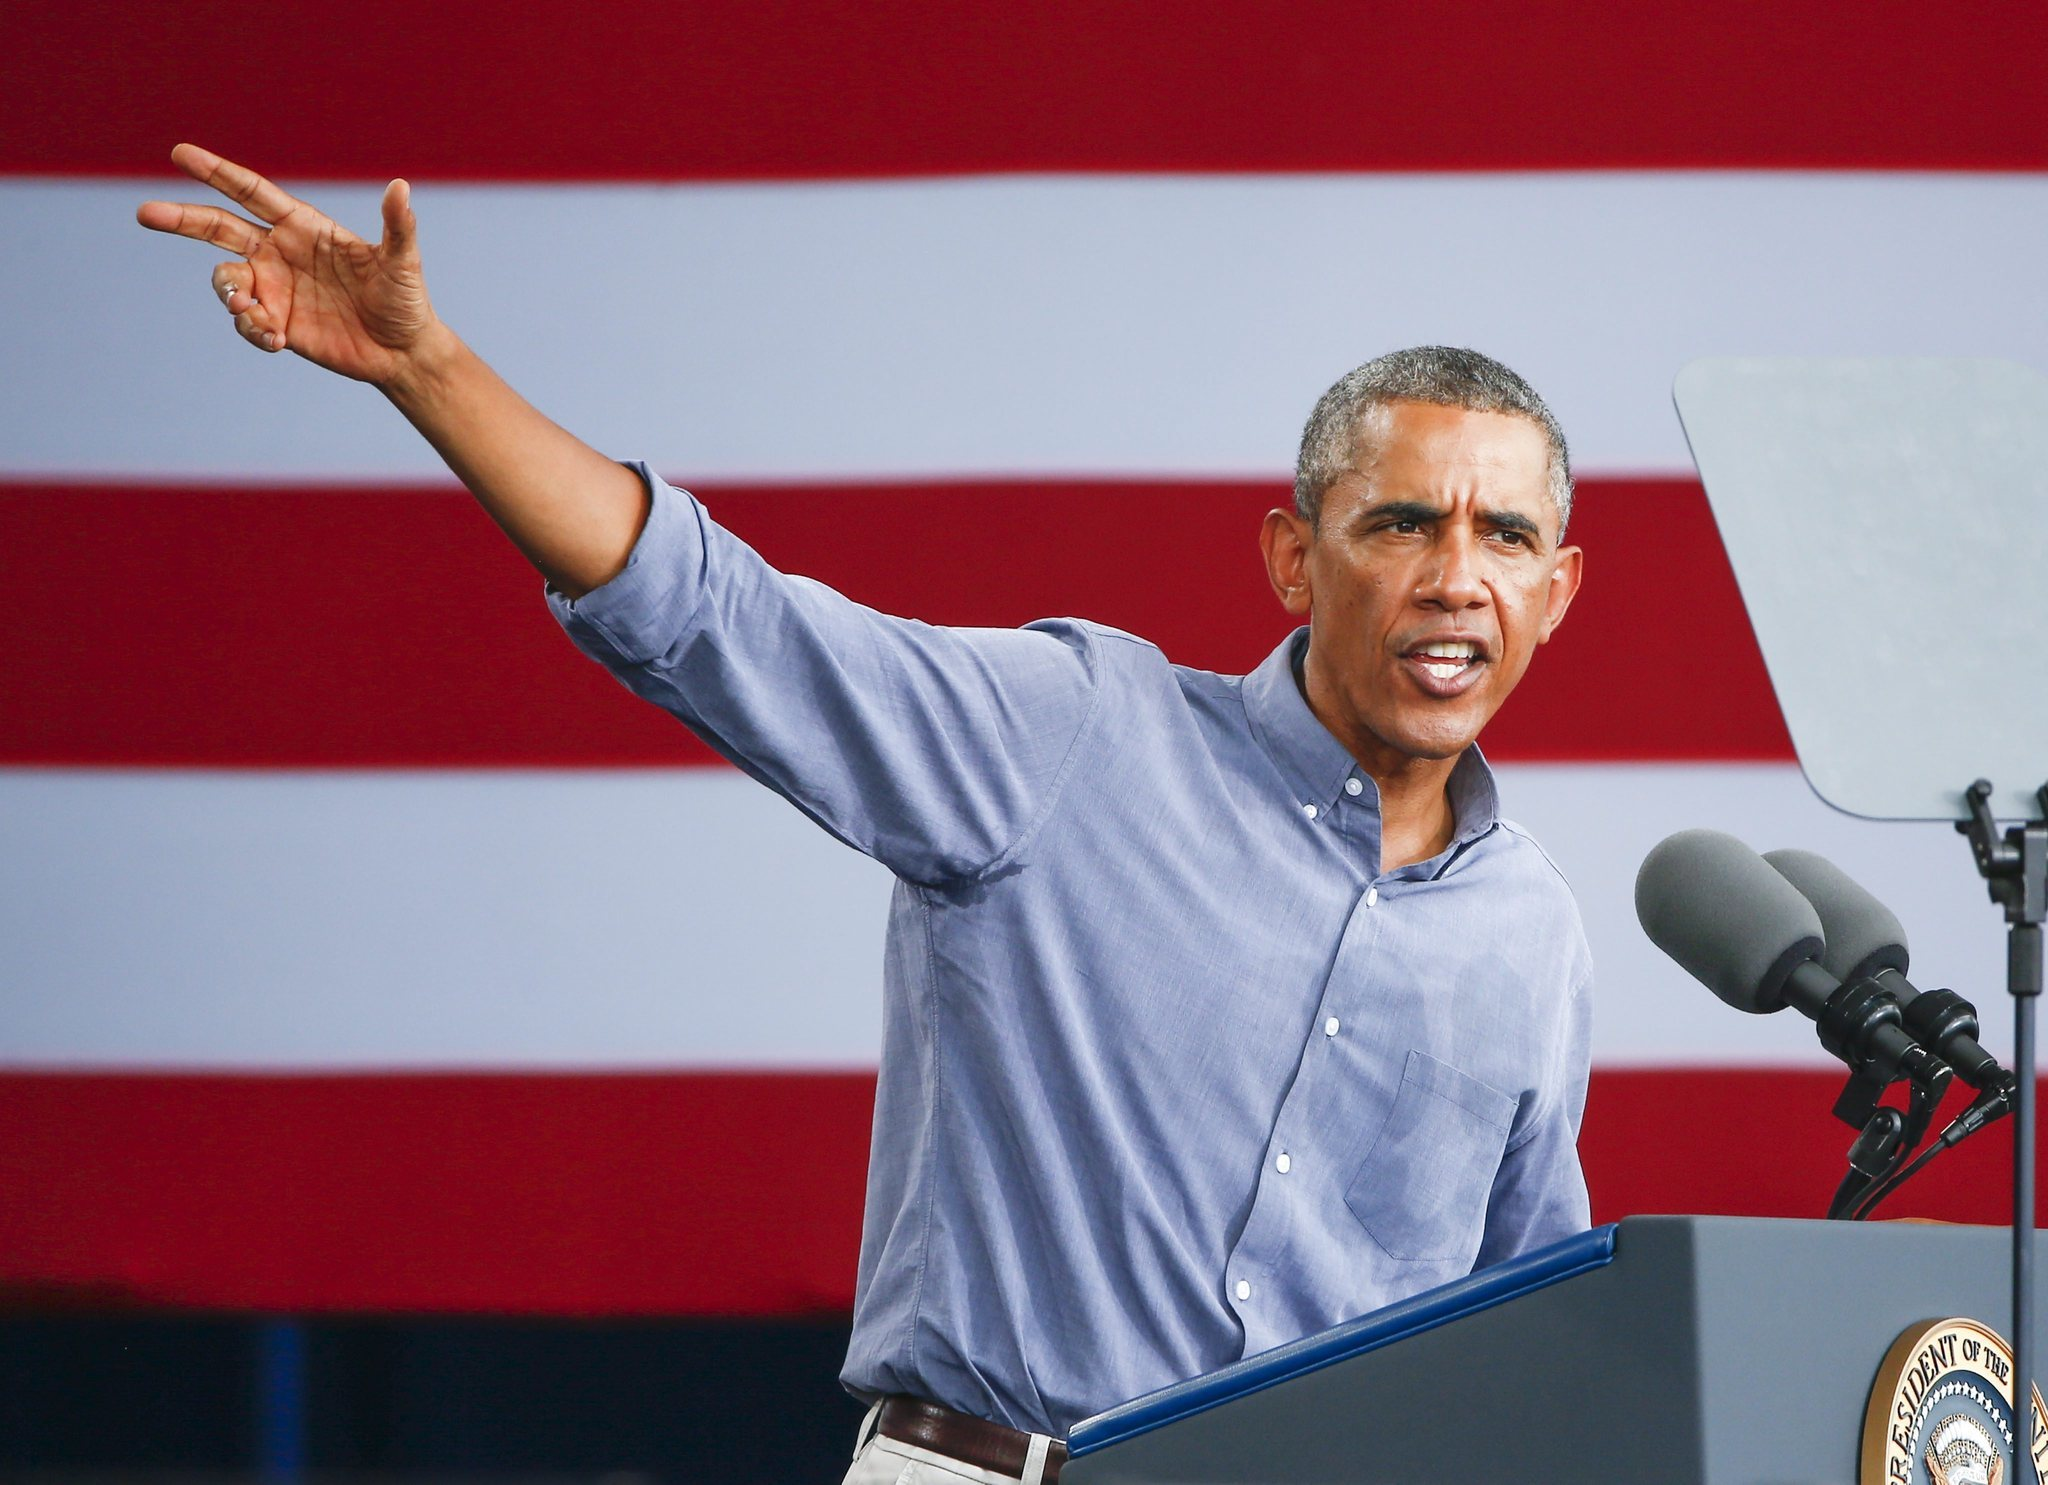 Obama tries to rekindle hope in Labor Day speech